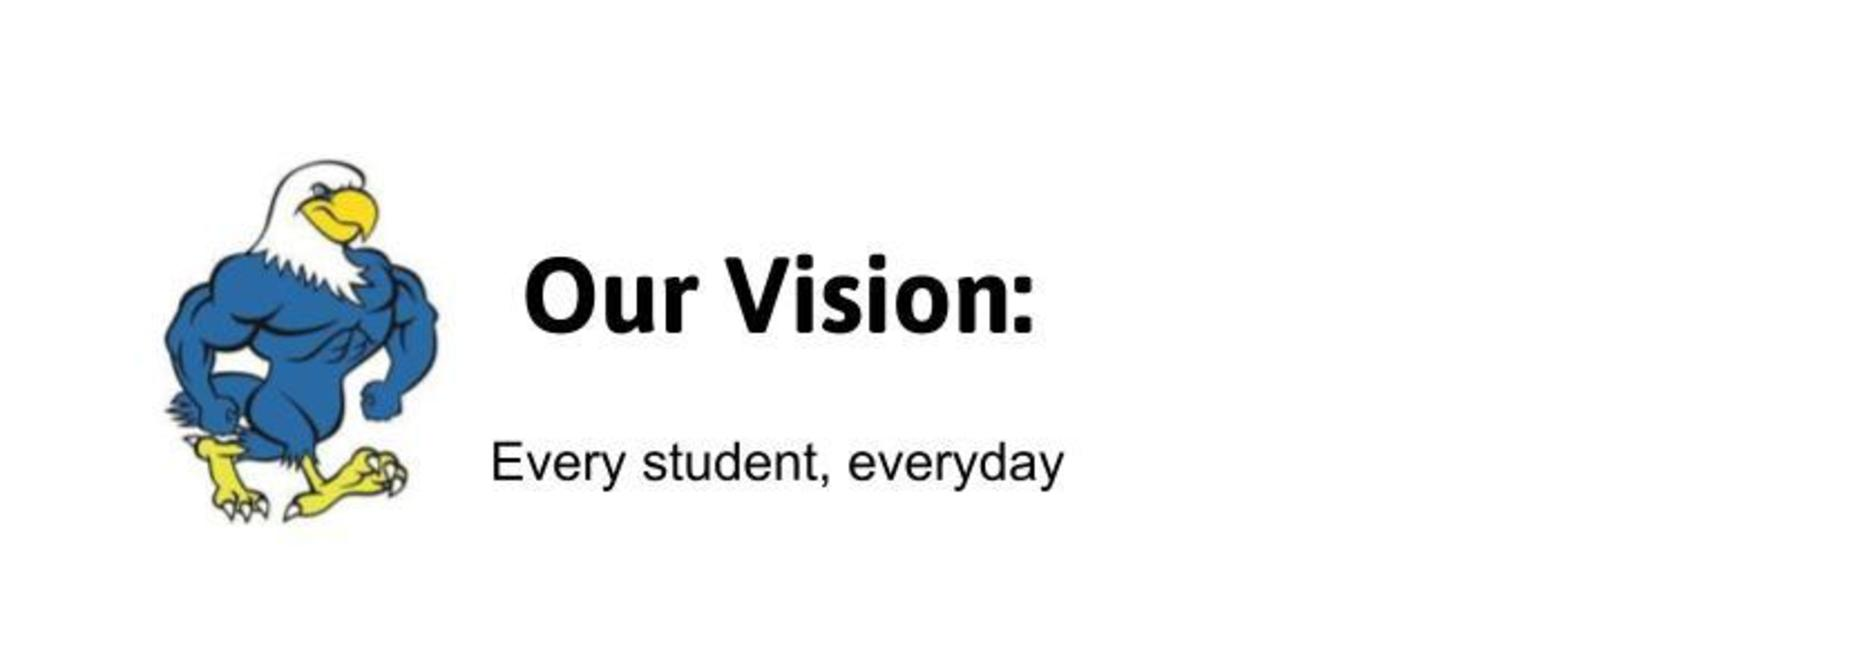 Our Vision: Every student, everyday